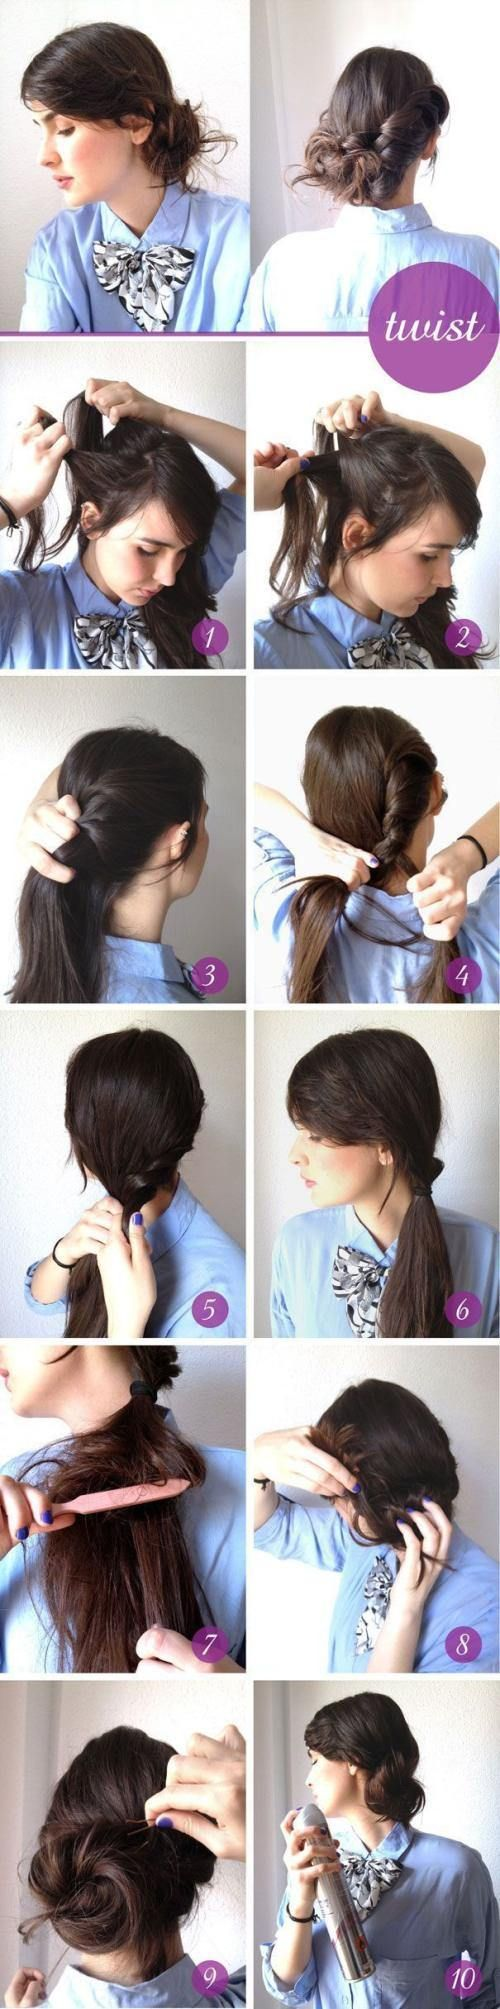 I need to try some of these do it yourself hair ideas theberry do it yourself hair ideas theberry solutioingenieria Images